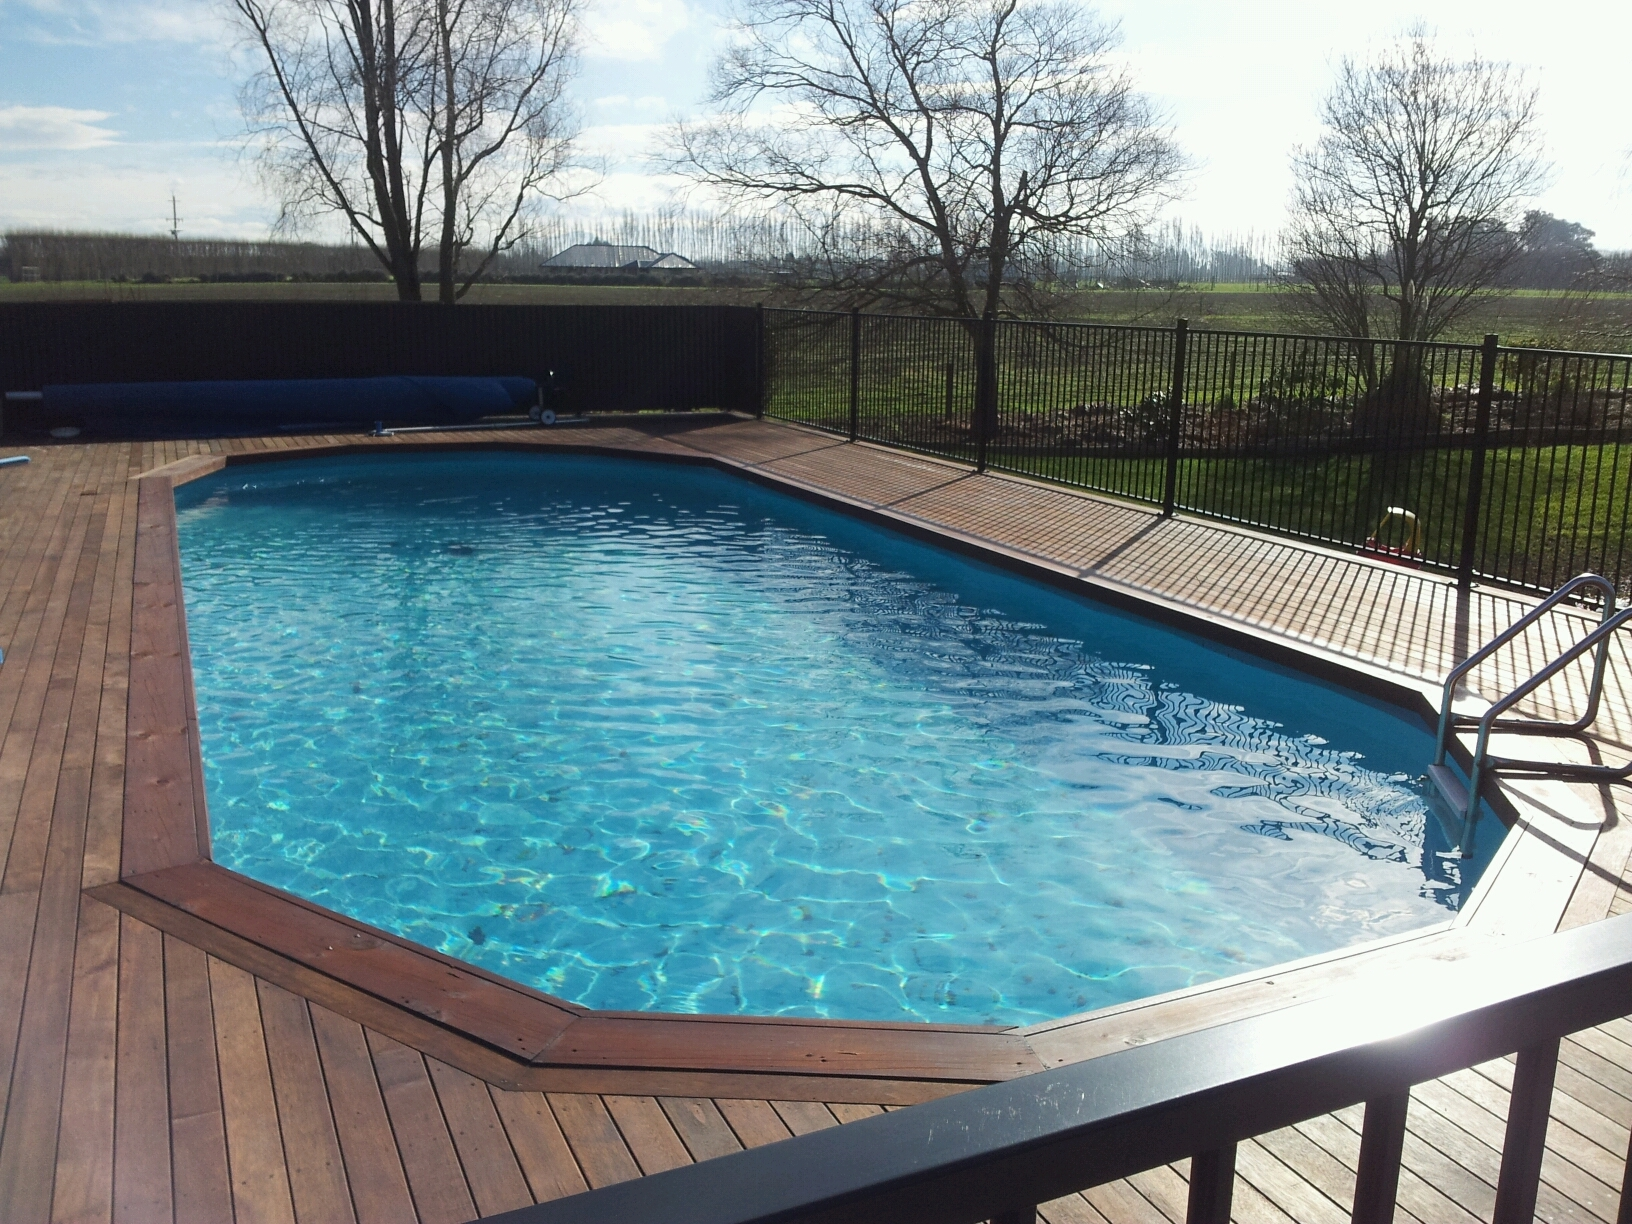 Swimming pools pool land supplier of spa pools for Deep swimming pools for garden